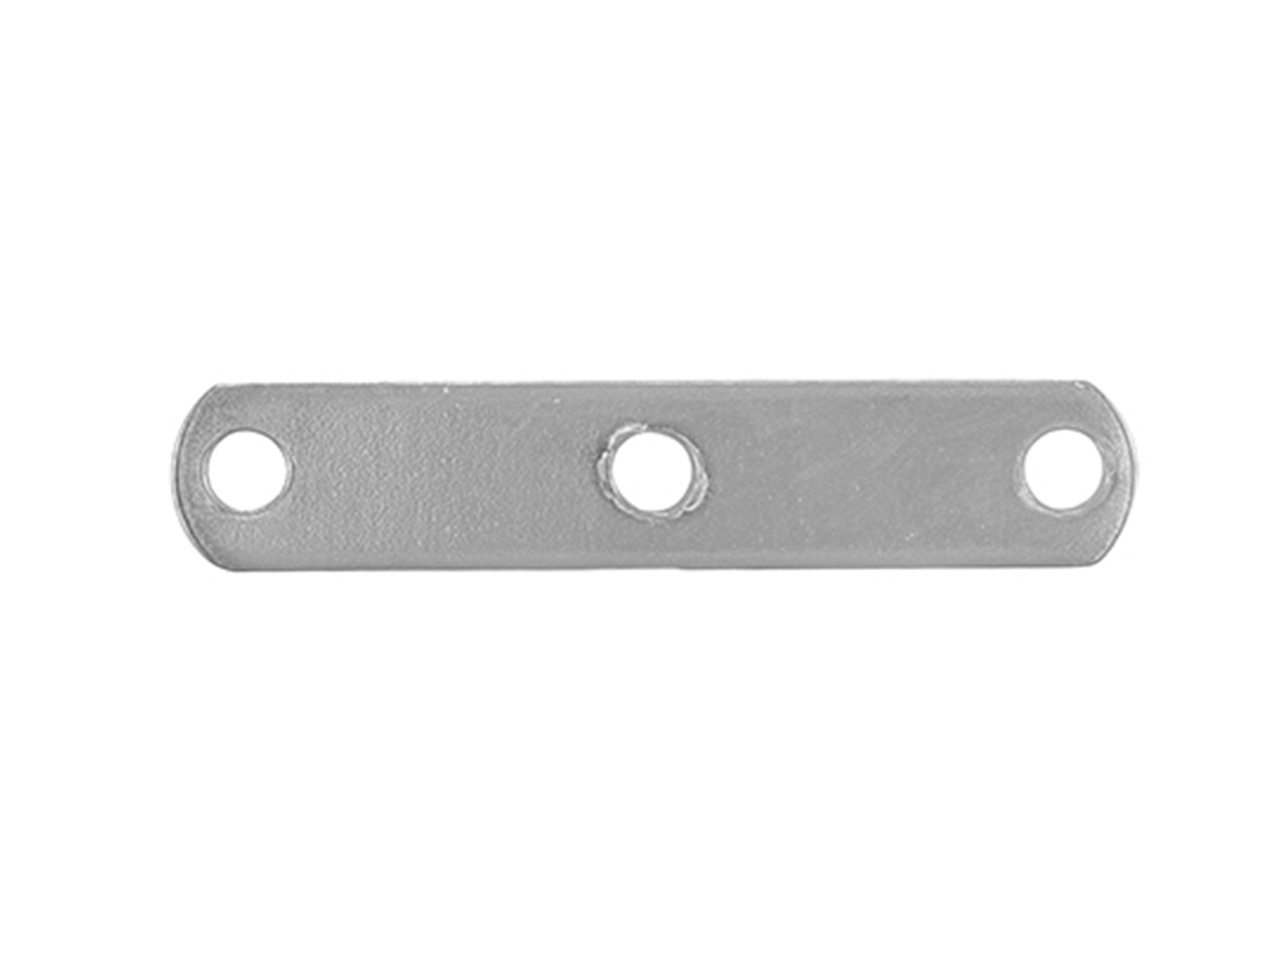 Intercalaire barrette 3 trous 15 mm, Or gris 18k, n° 3